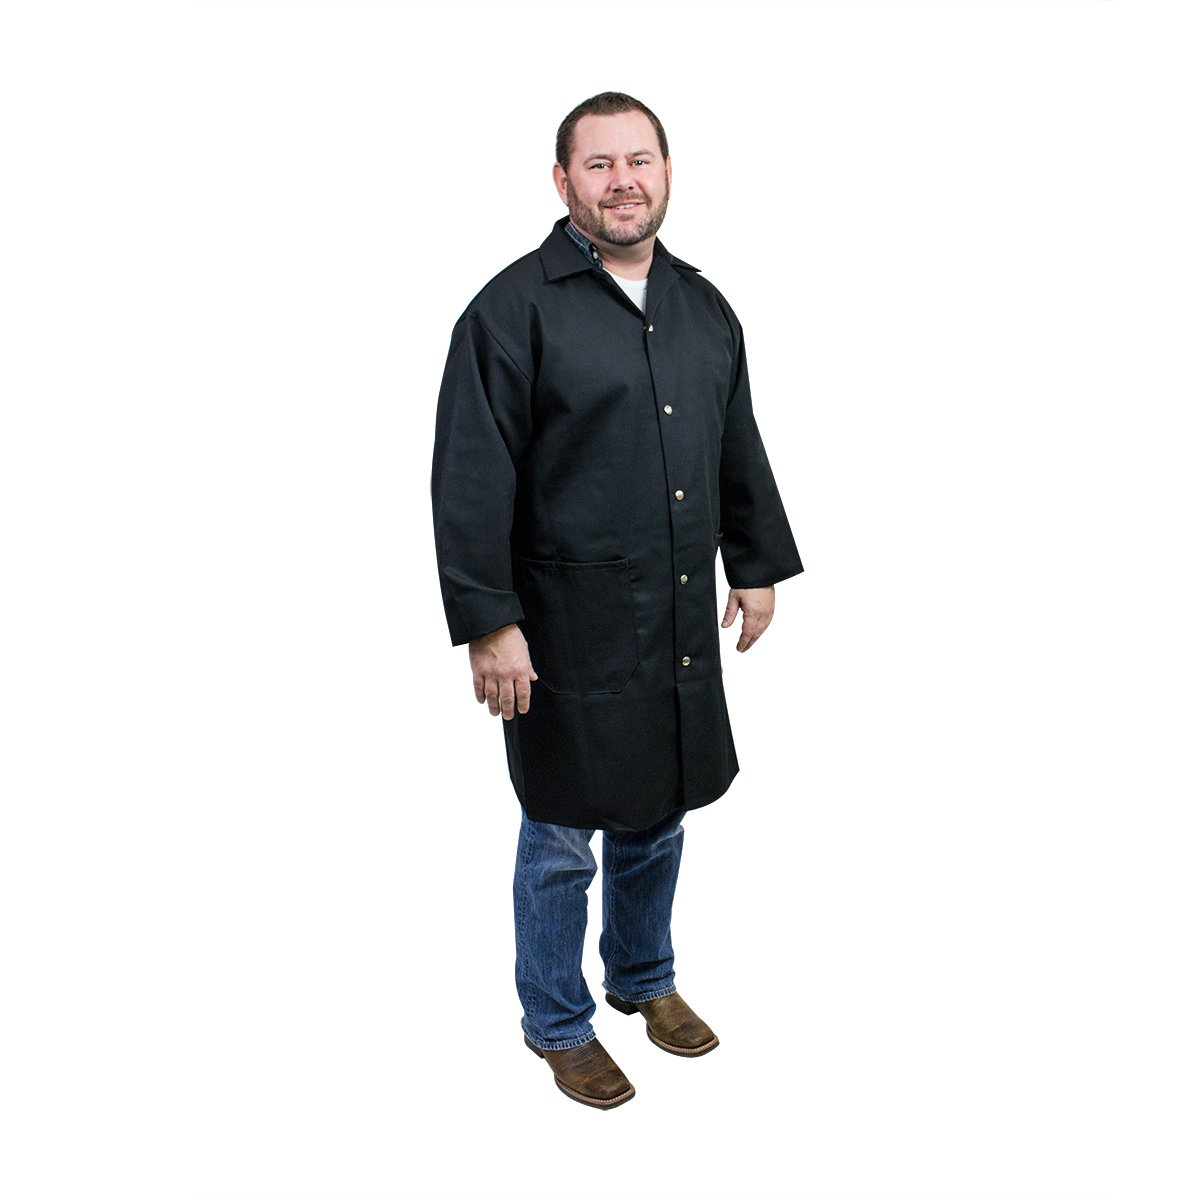 UltraSource - 460014-M Long Sleeve Smock/Lab Coat, Unisex, Medium, Black